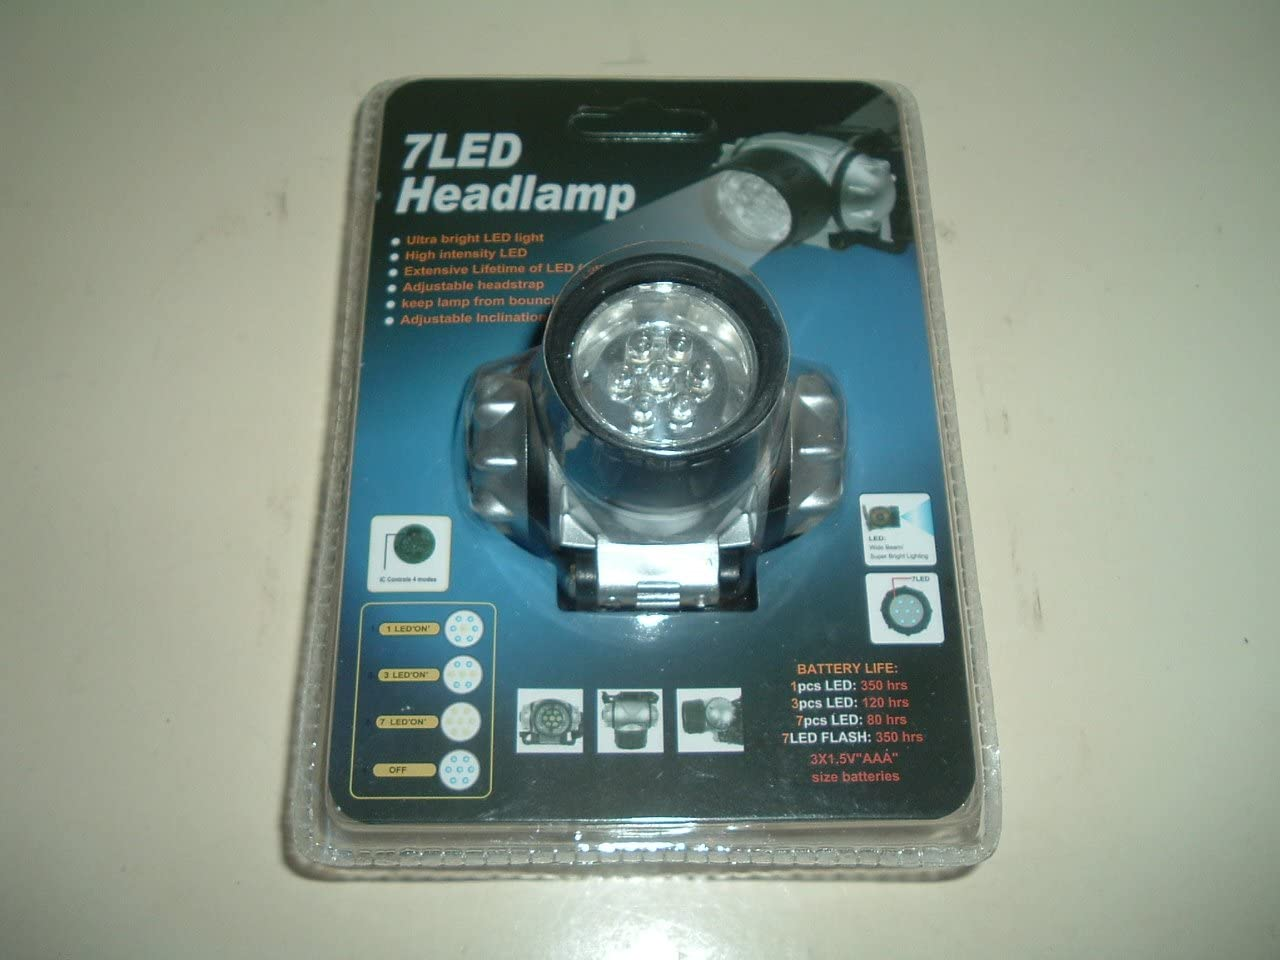 1 X 7 LED Headlight with Strap with 3 Modes